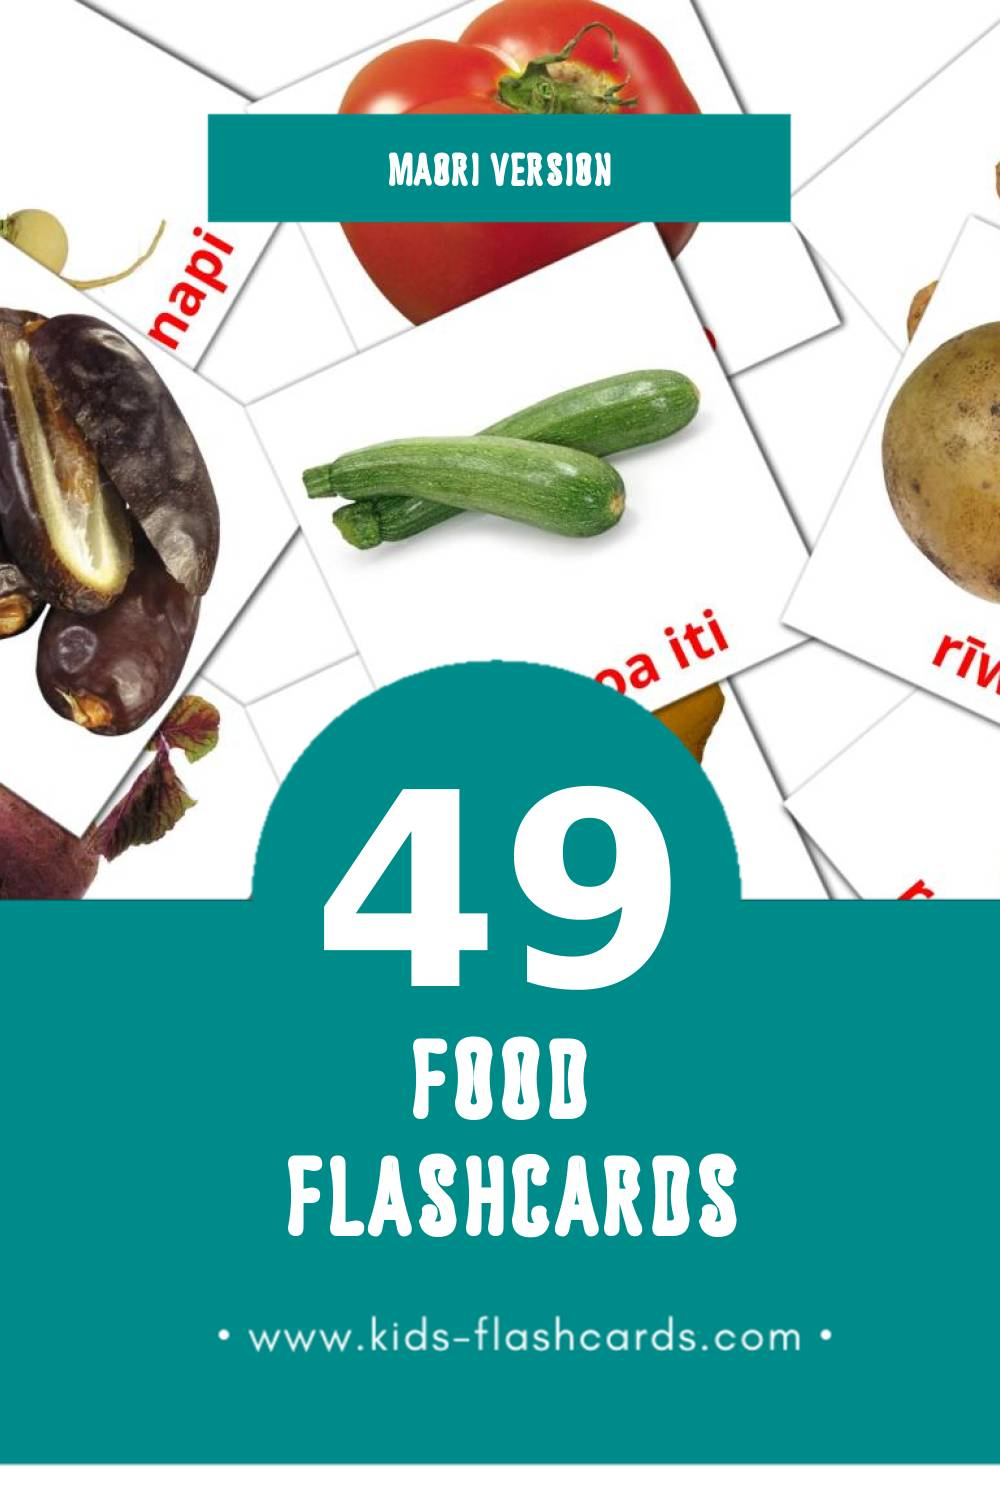 Visual Kai Flashcards for Toddlers (49 cards in Maori)